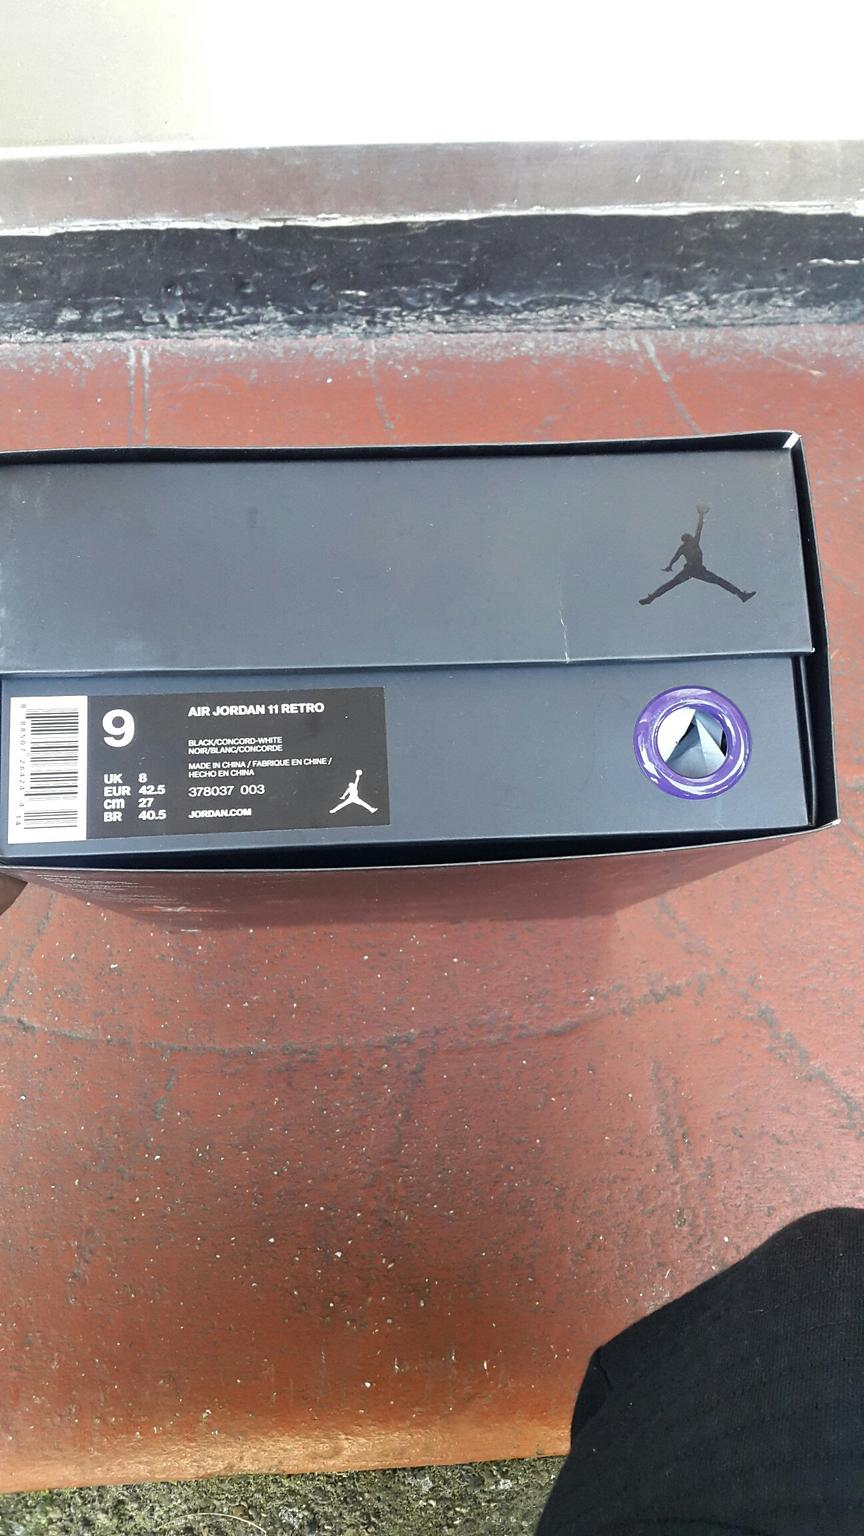 b3418dde8d5 Air jordan 11 space jam size 8uk 9US 42.5EU in EN2 Enfield for ...